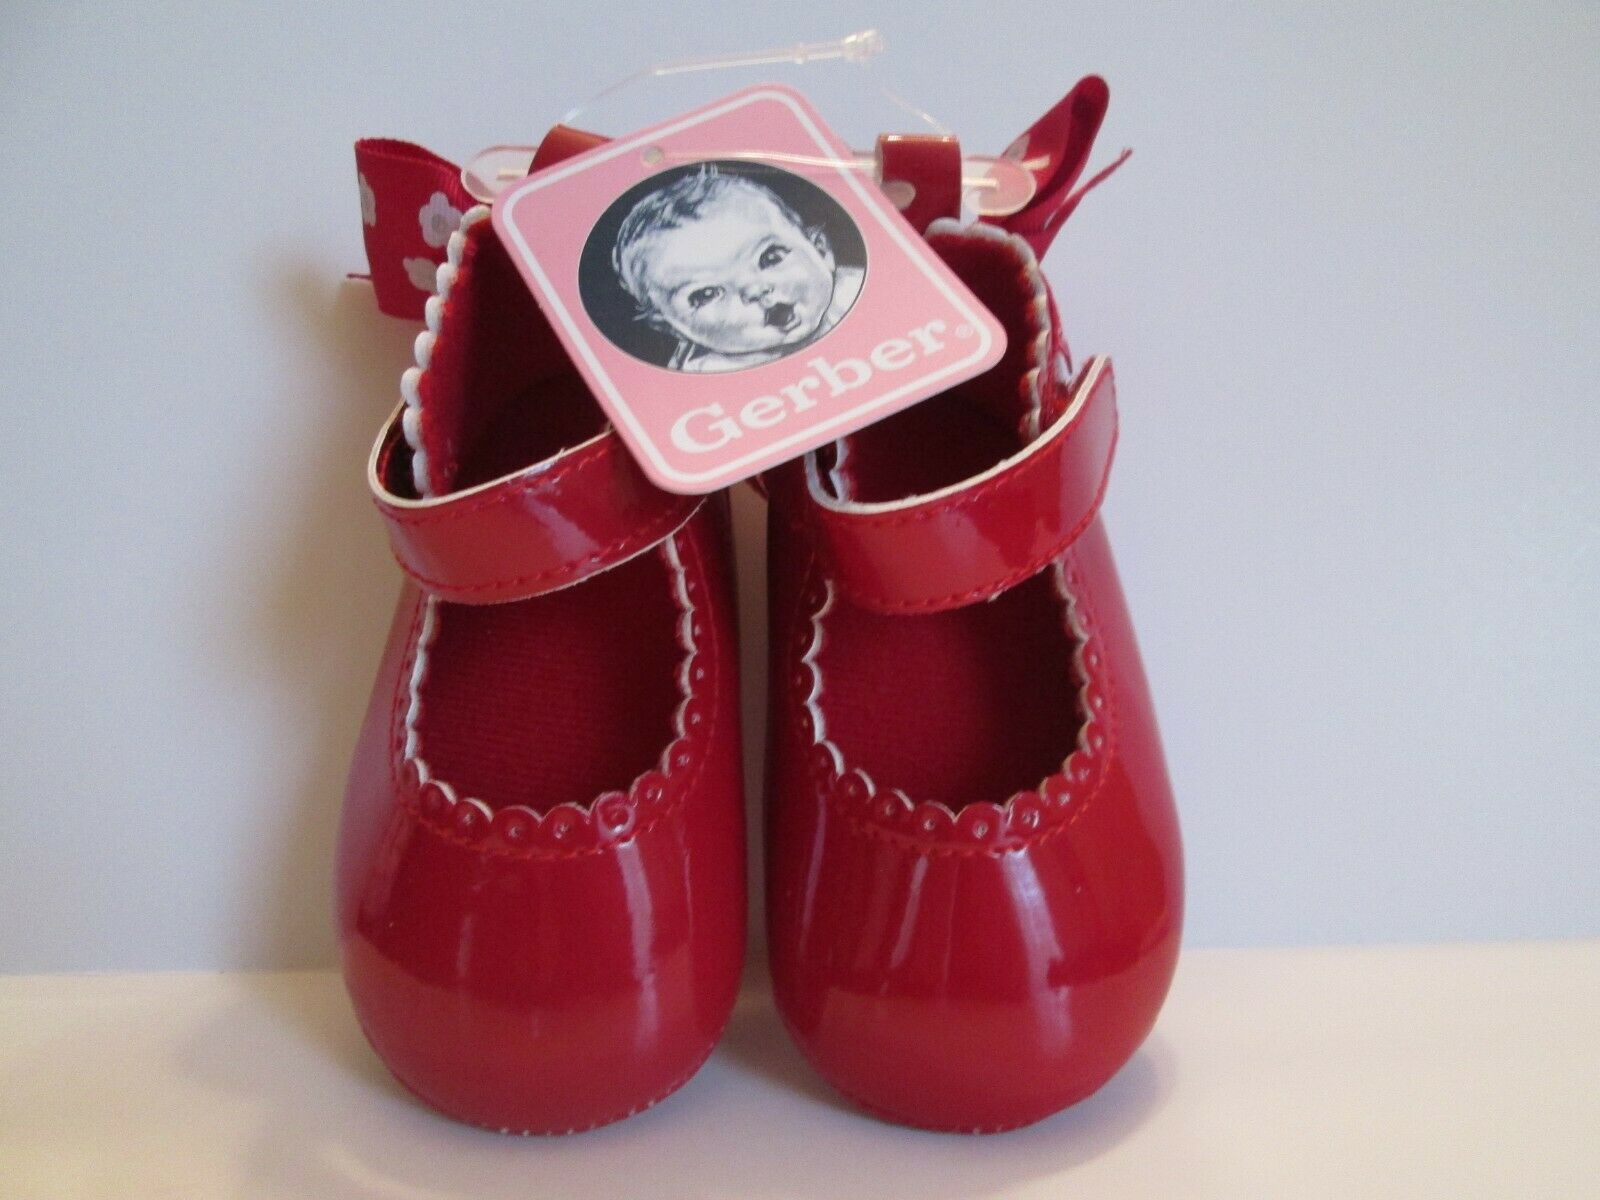 Gerber Baby Girl Red w Bow Pattan Leather Look Soft Sole Sho